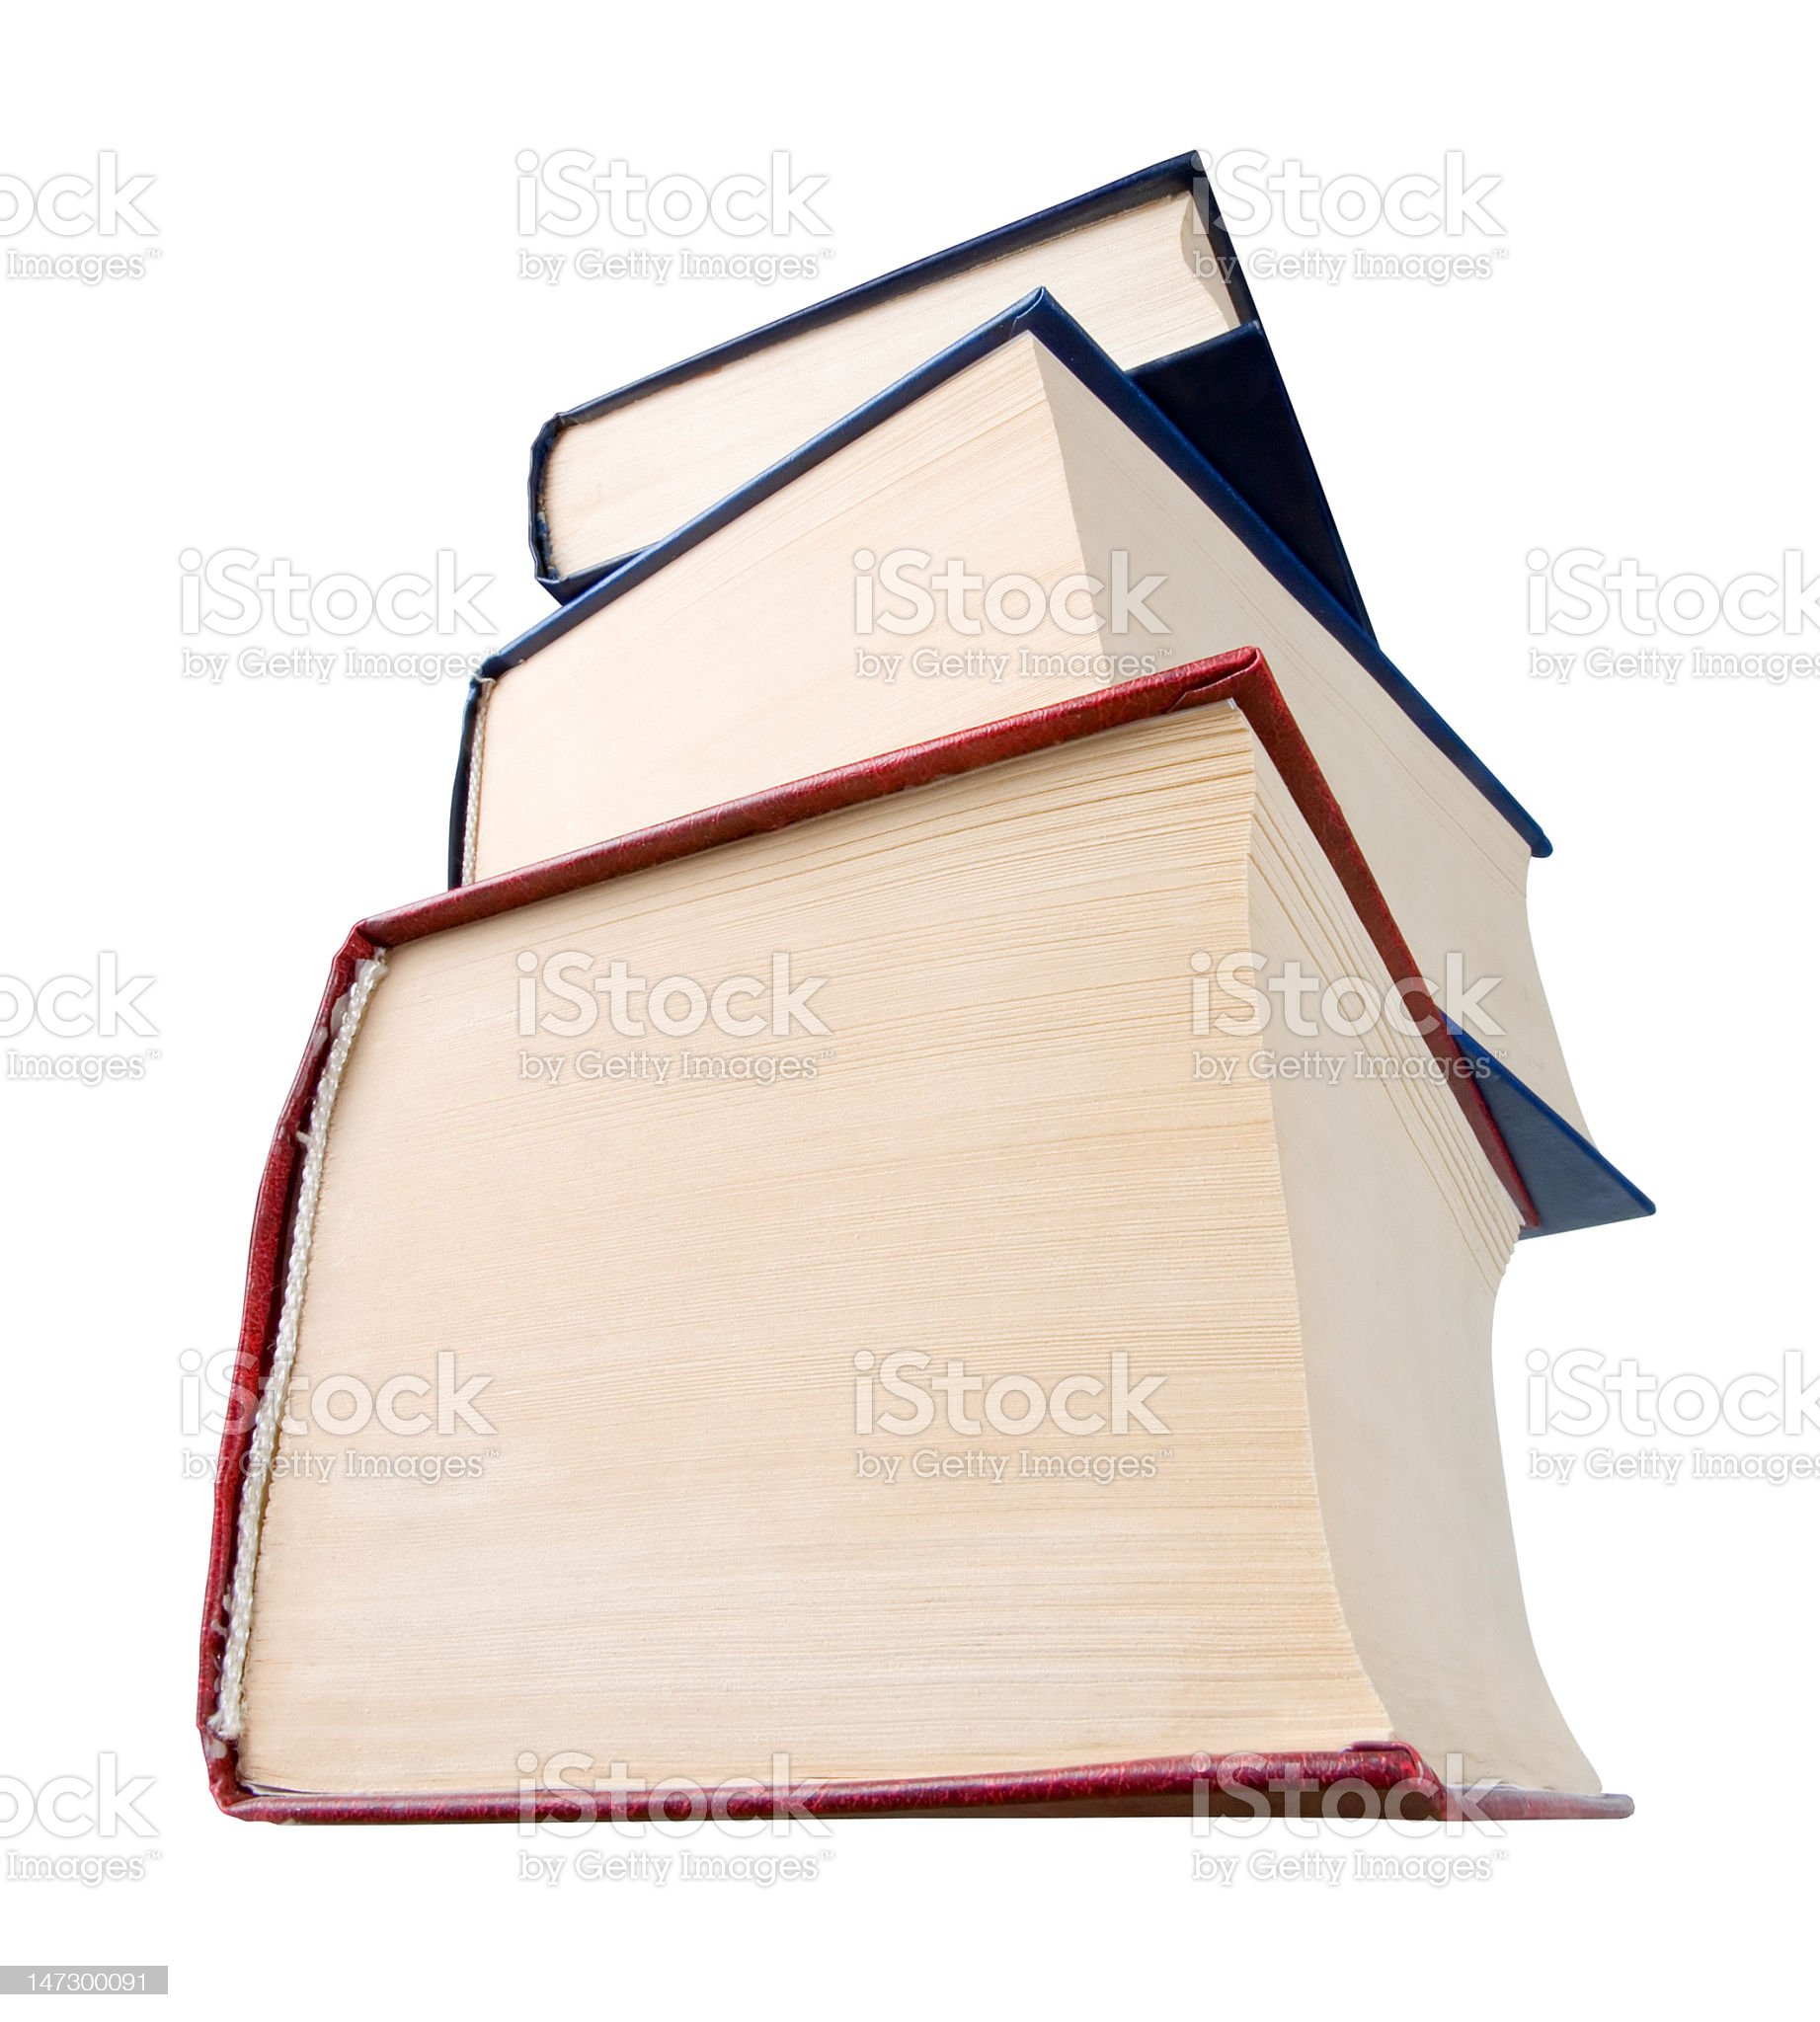 Stack of thick hardback books against white background royalty-free stock photo